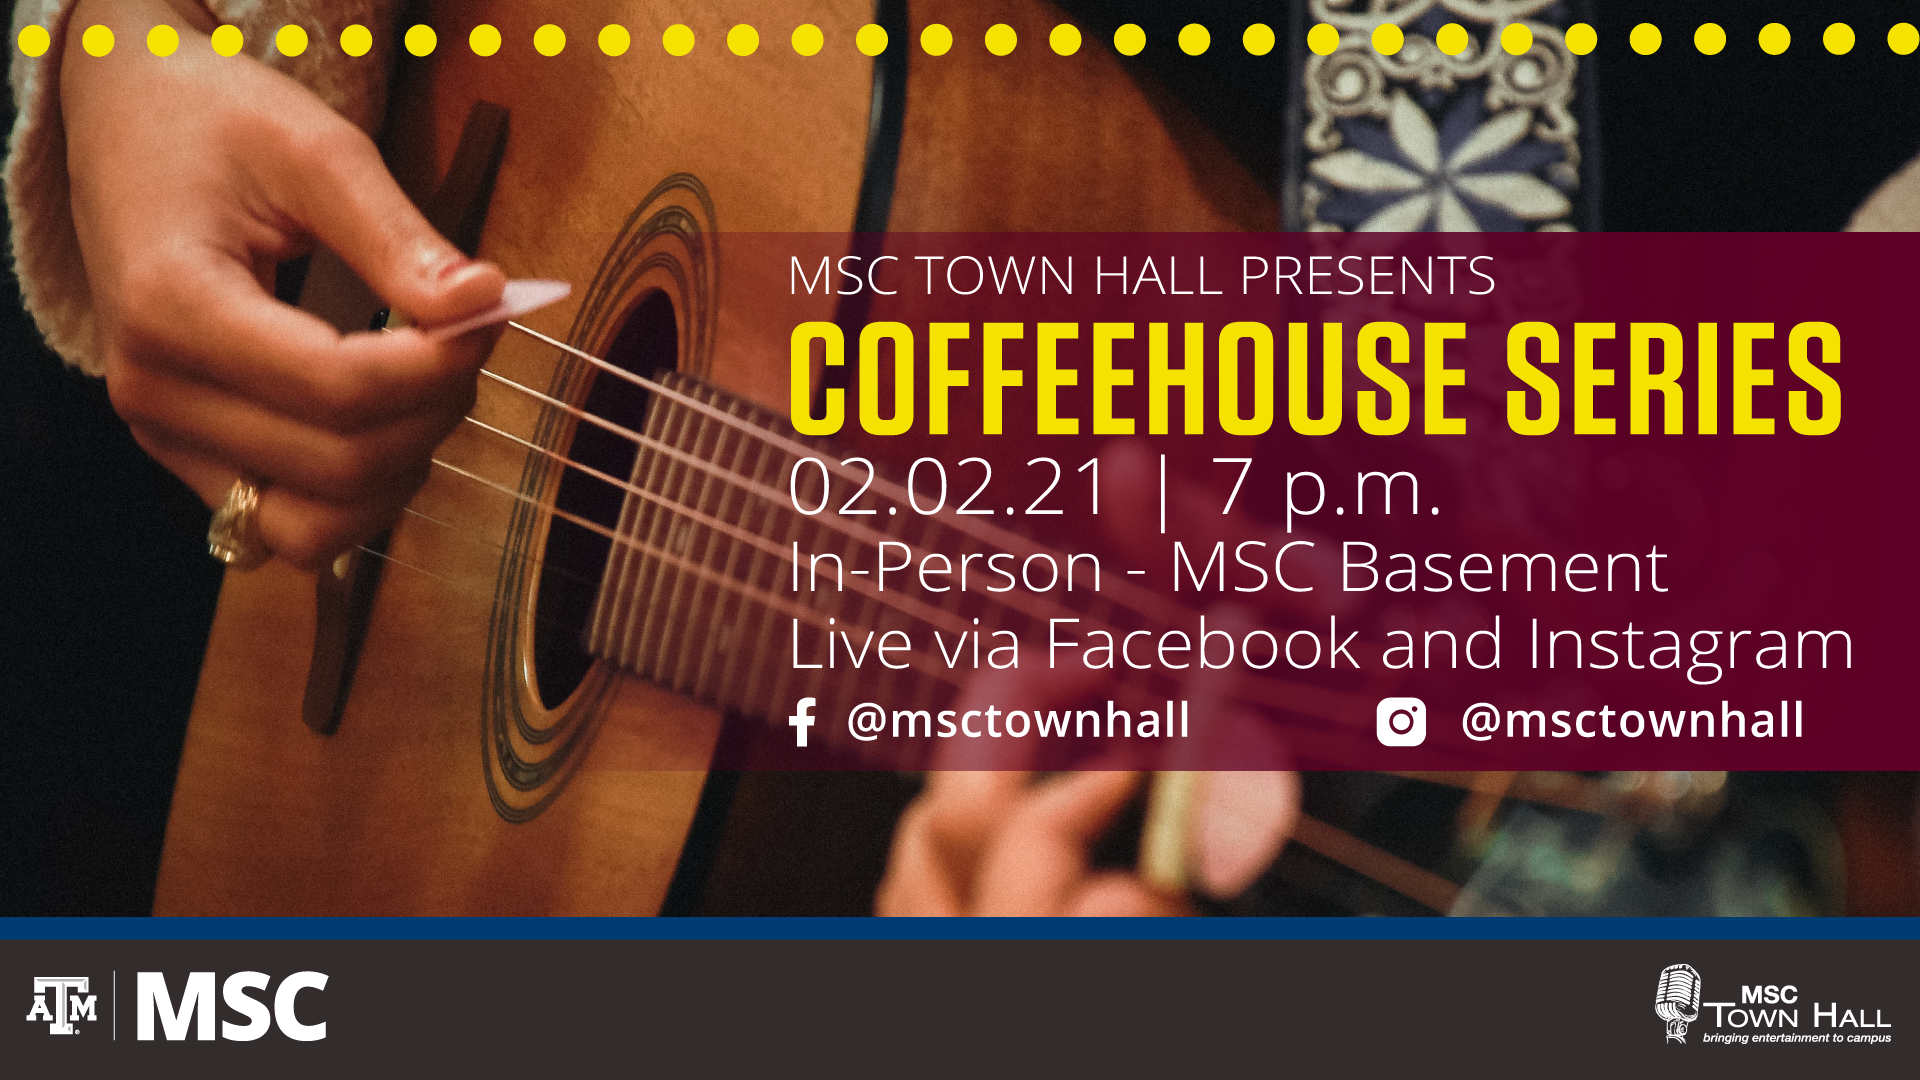 MSC Town Hall Presents CoffeeHouse Series on February 2nd, 2021 at 7 p.m. In-Person at the MSC Basement and Live via Facebook @msctownhall and Instagram @msctownhall